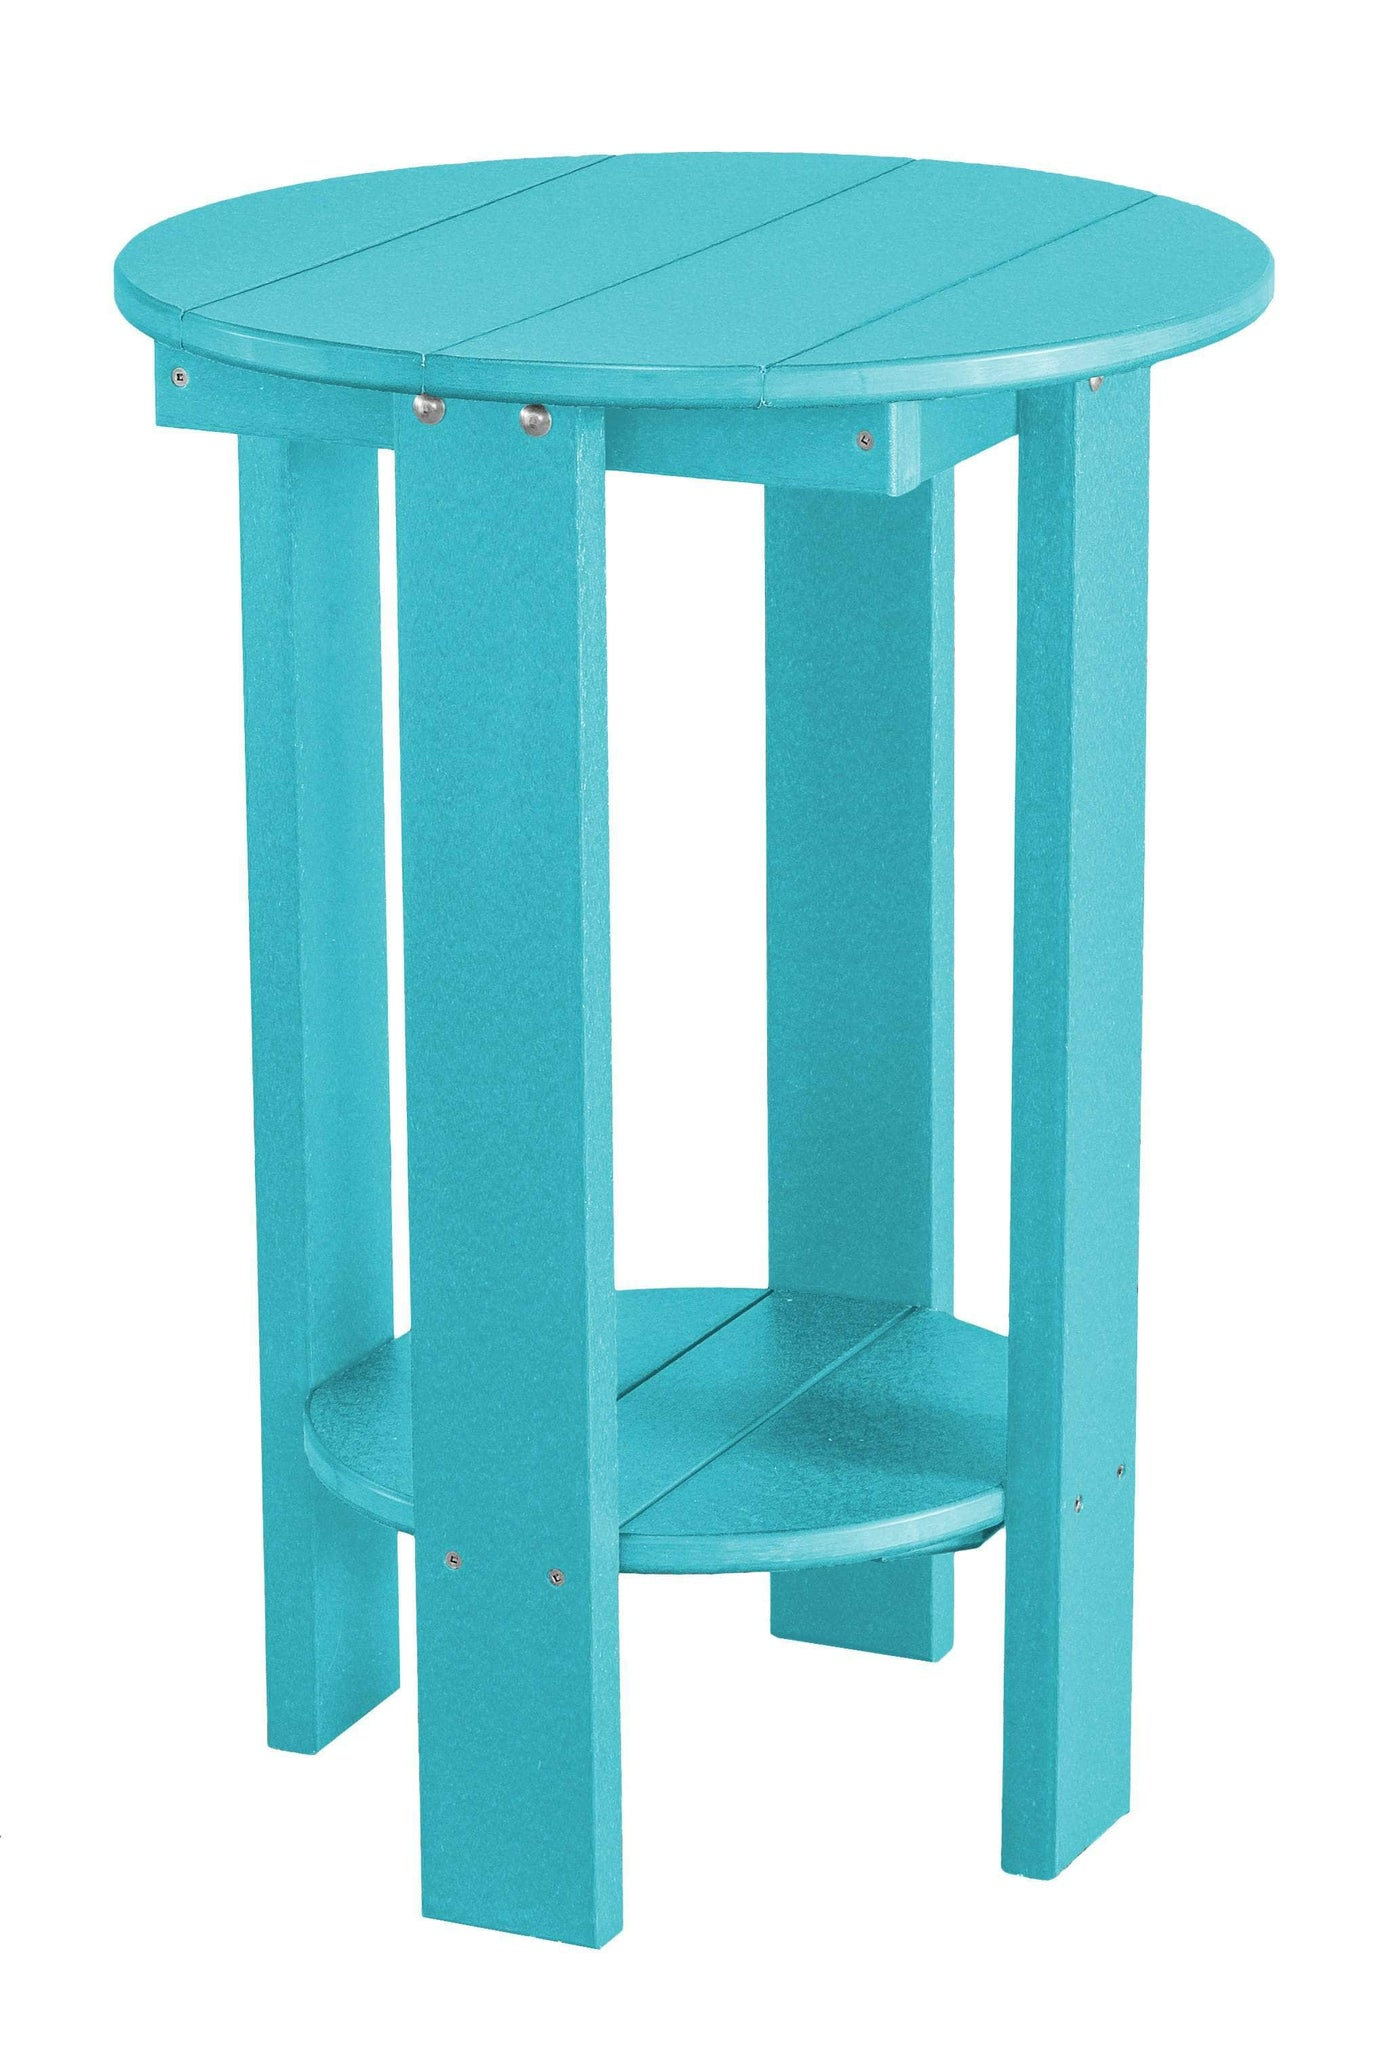 Wildridge Aruba Heritage Balcony Table